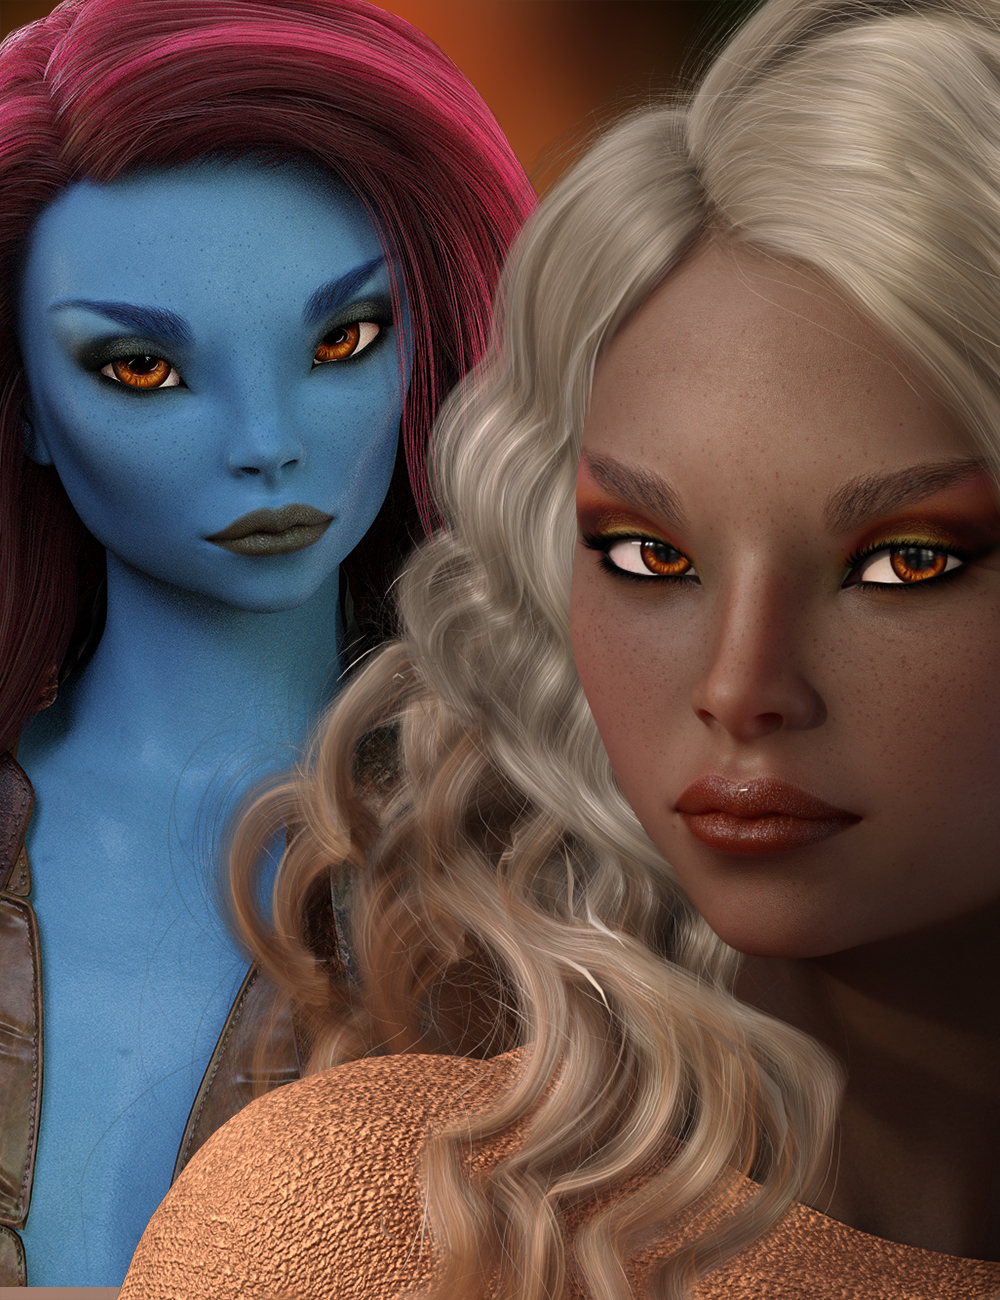 Dusti for Genesis 8 and Honni 8 by: hotlilme74, 3D Models by Daz 3D